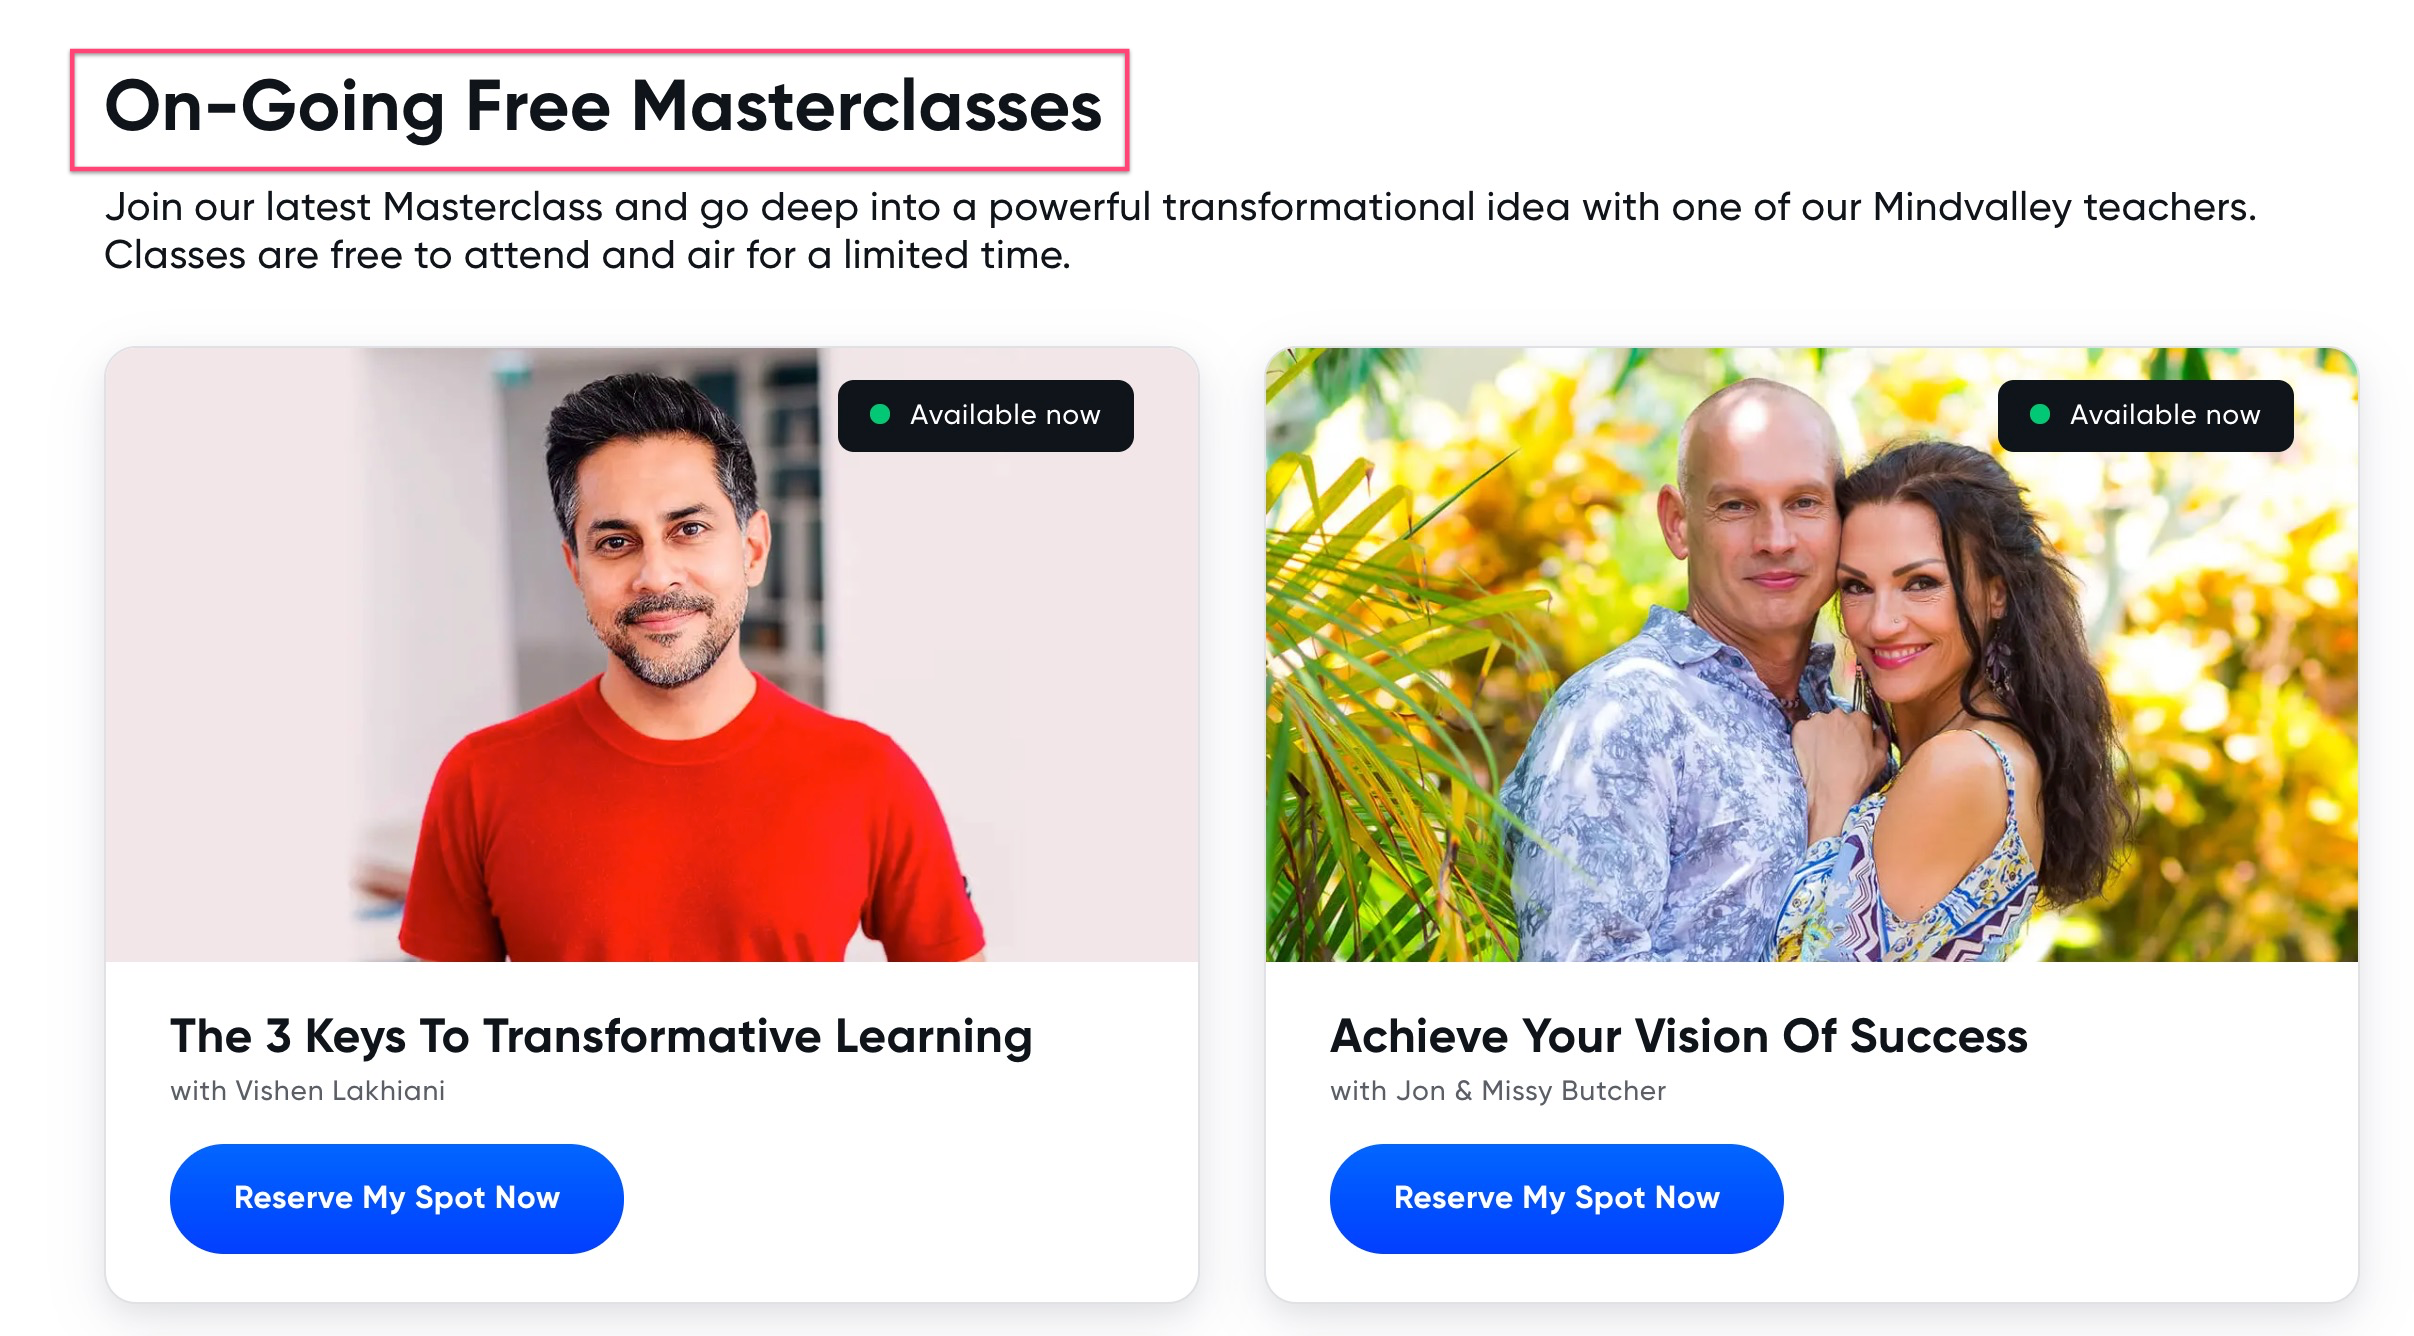 On-Going Free Mindvalley Masterclasses